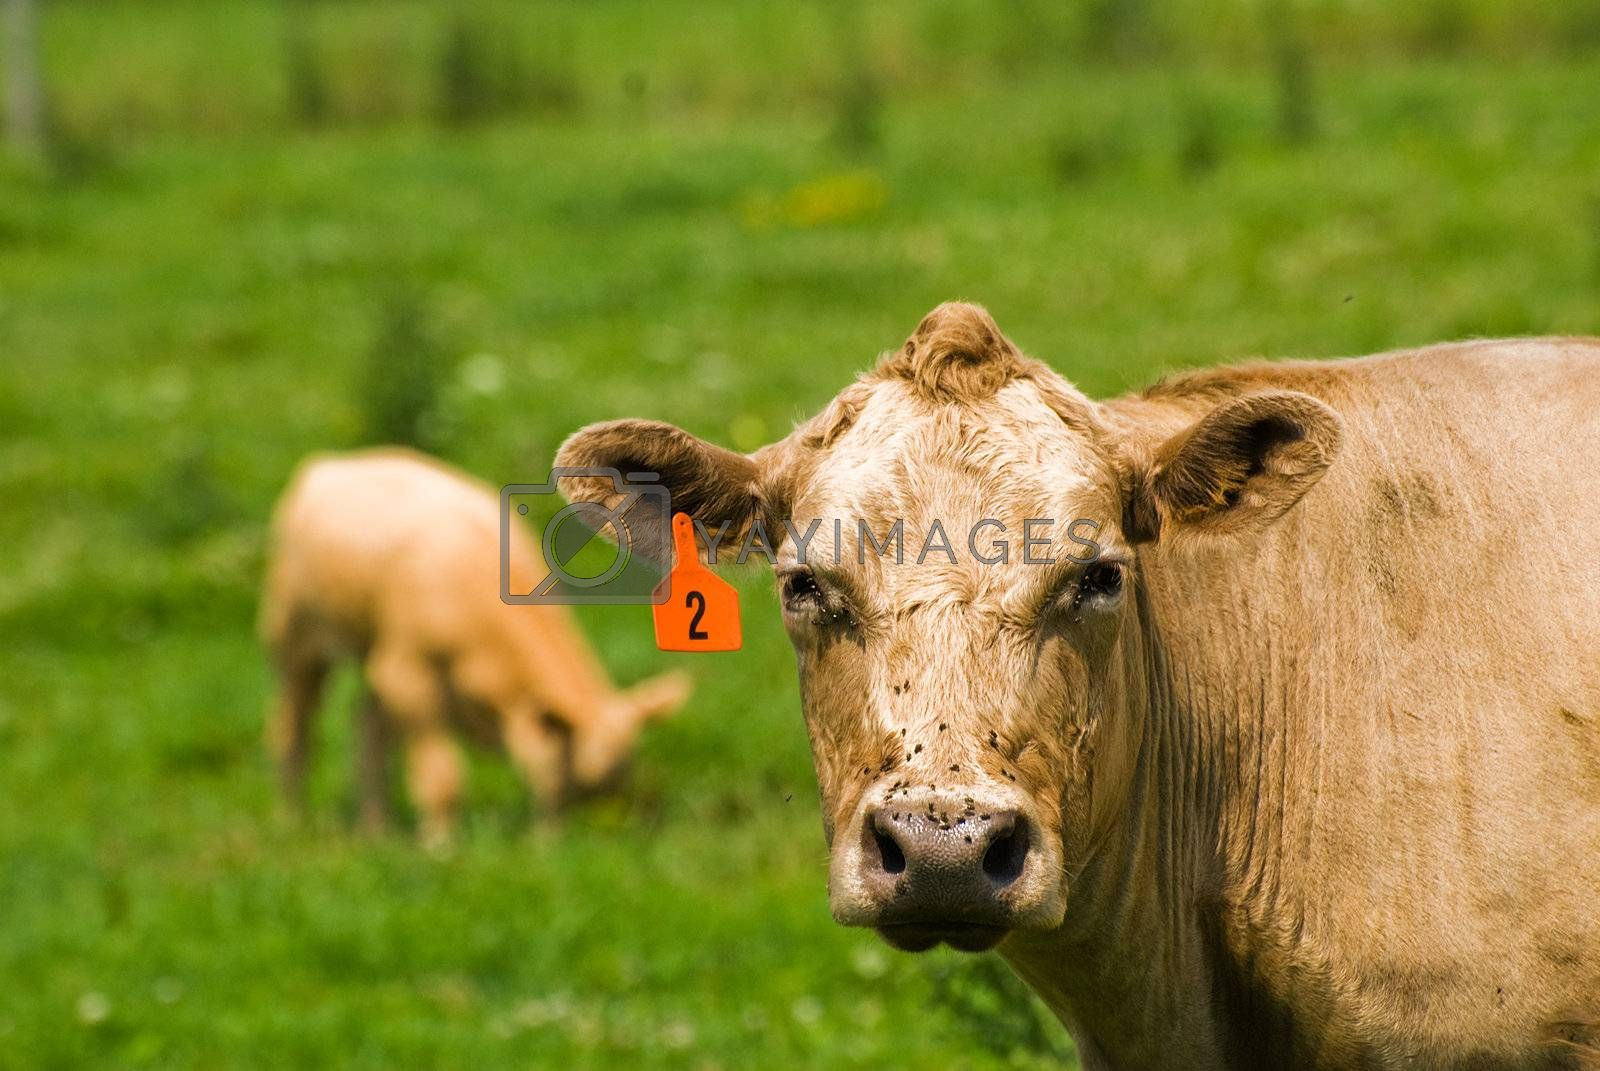 Royalty free image of Cow 4 by chimmi